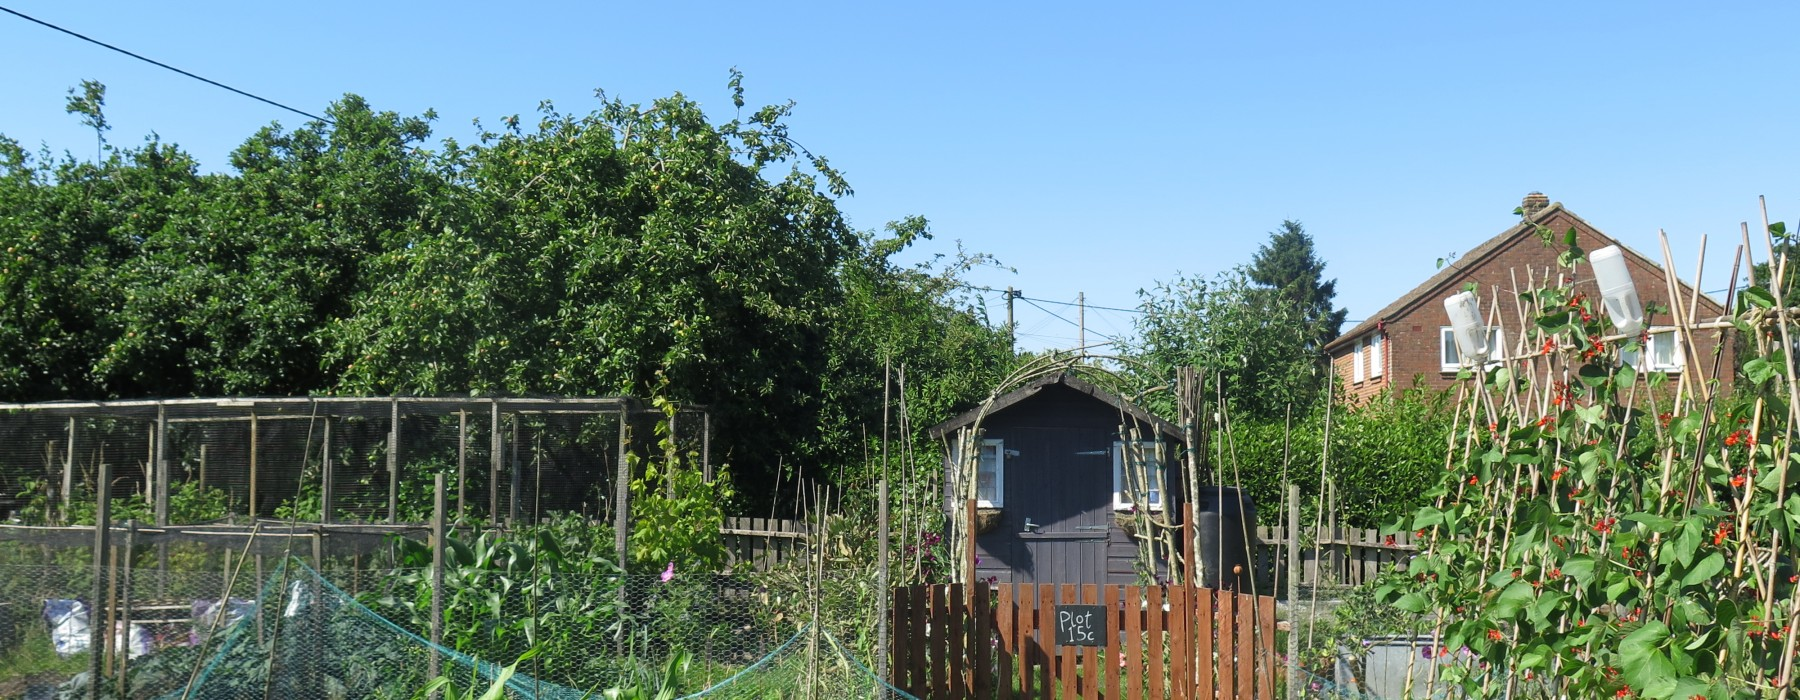 Blue Skies, Potatoes and the Second Growing Season